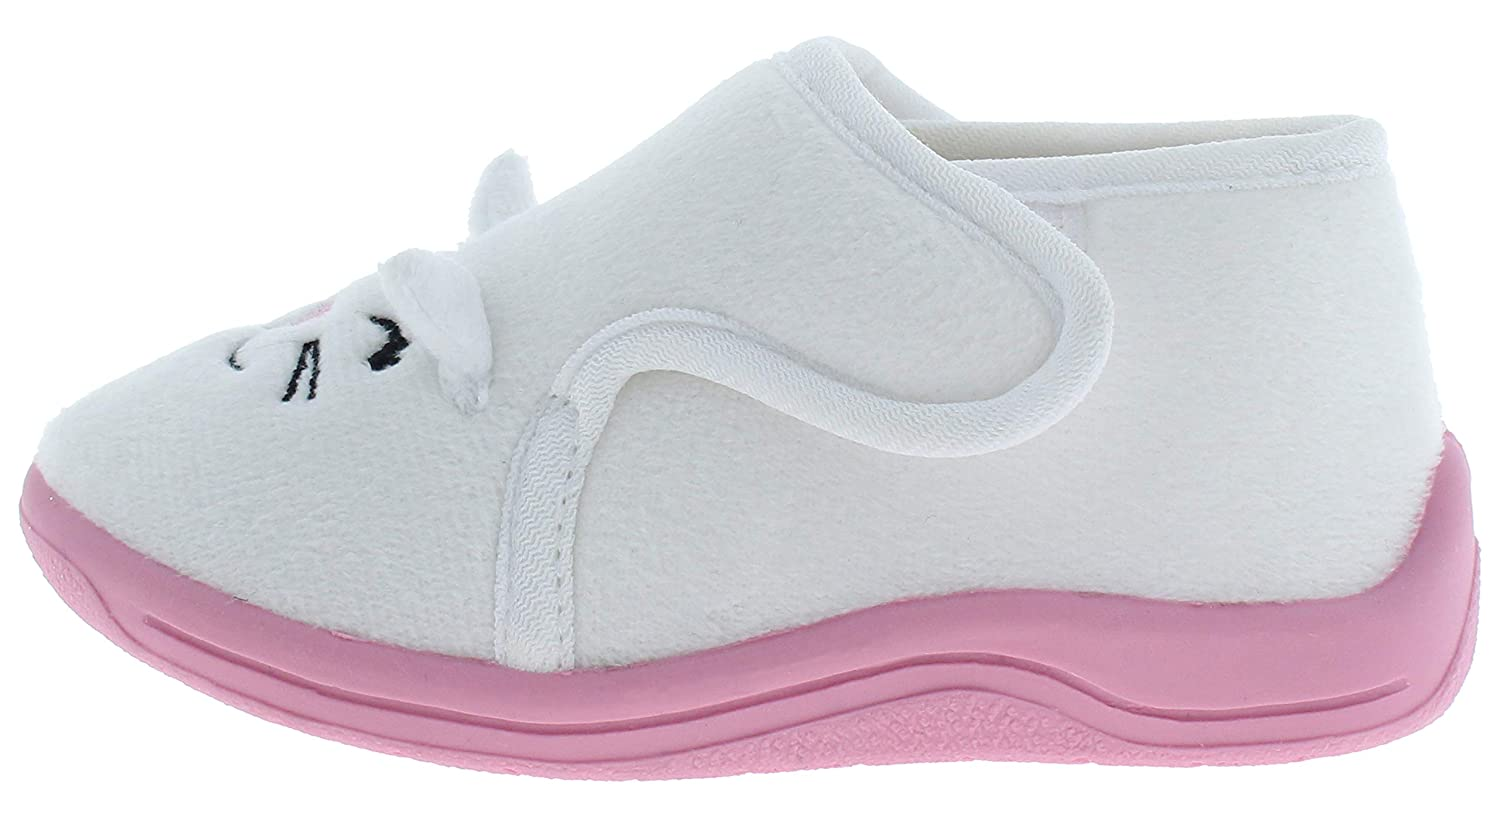 ea4e8a8e Shoes & Handbags Shoes Capelli New York Moccasin with Lovable Frog & Bow Toddler  Girls Indoor ...